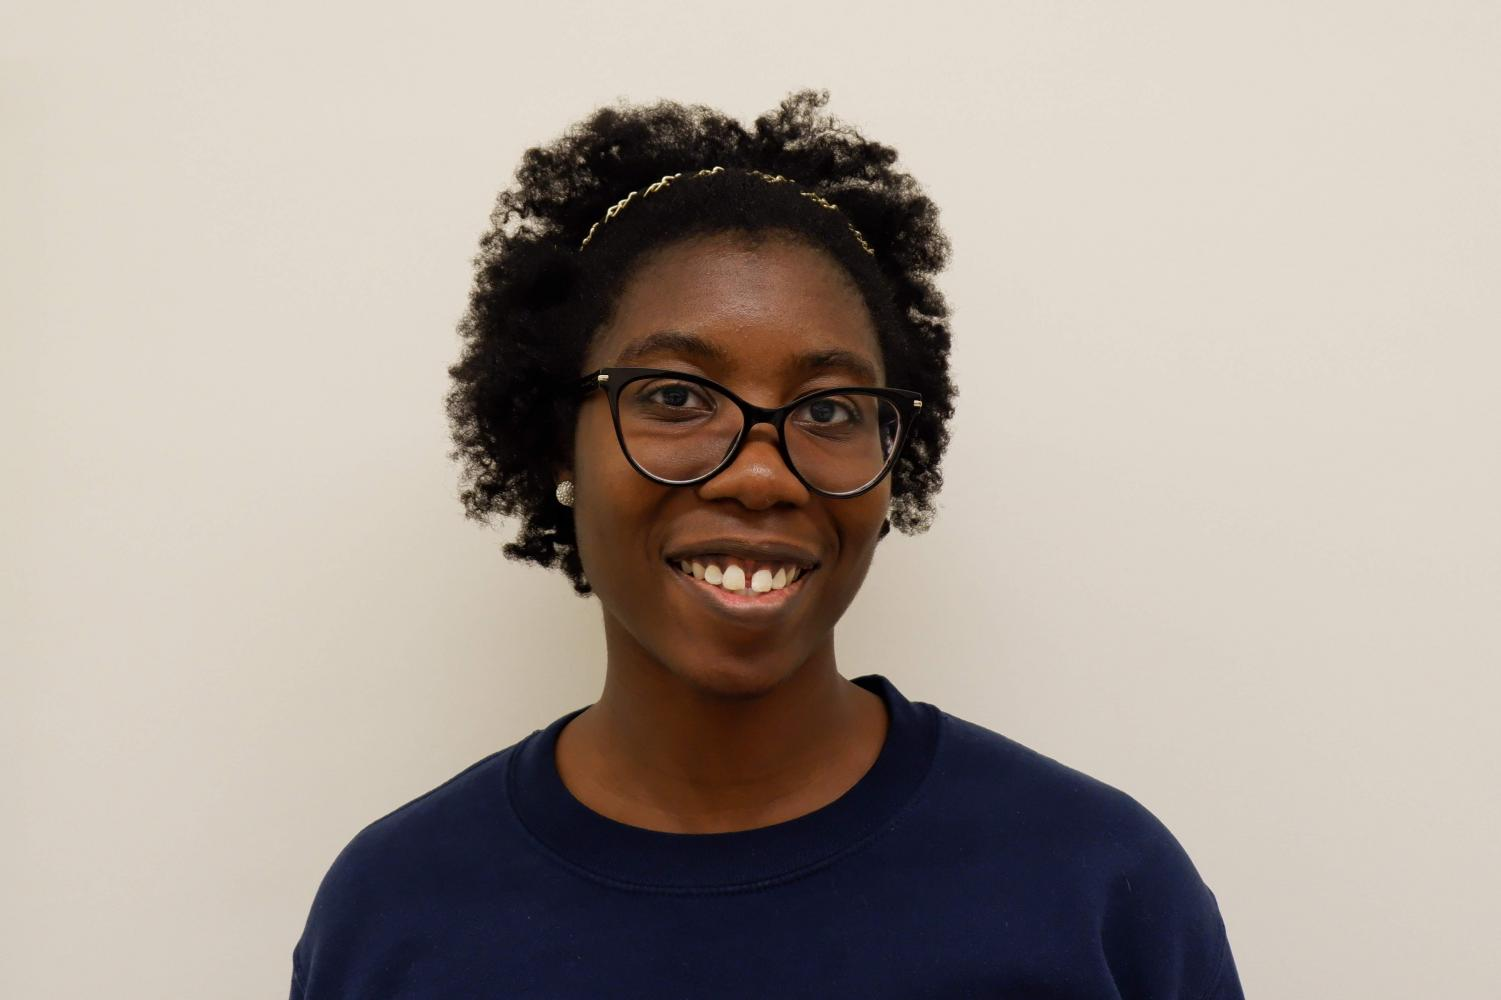 Cassandra Osei, one of the winners of the Fulbright-Hays fellowship, will conduct field work for her research in Brazil